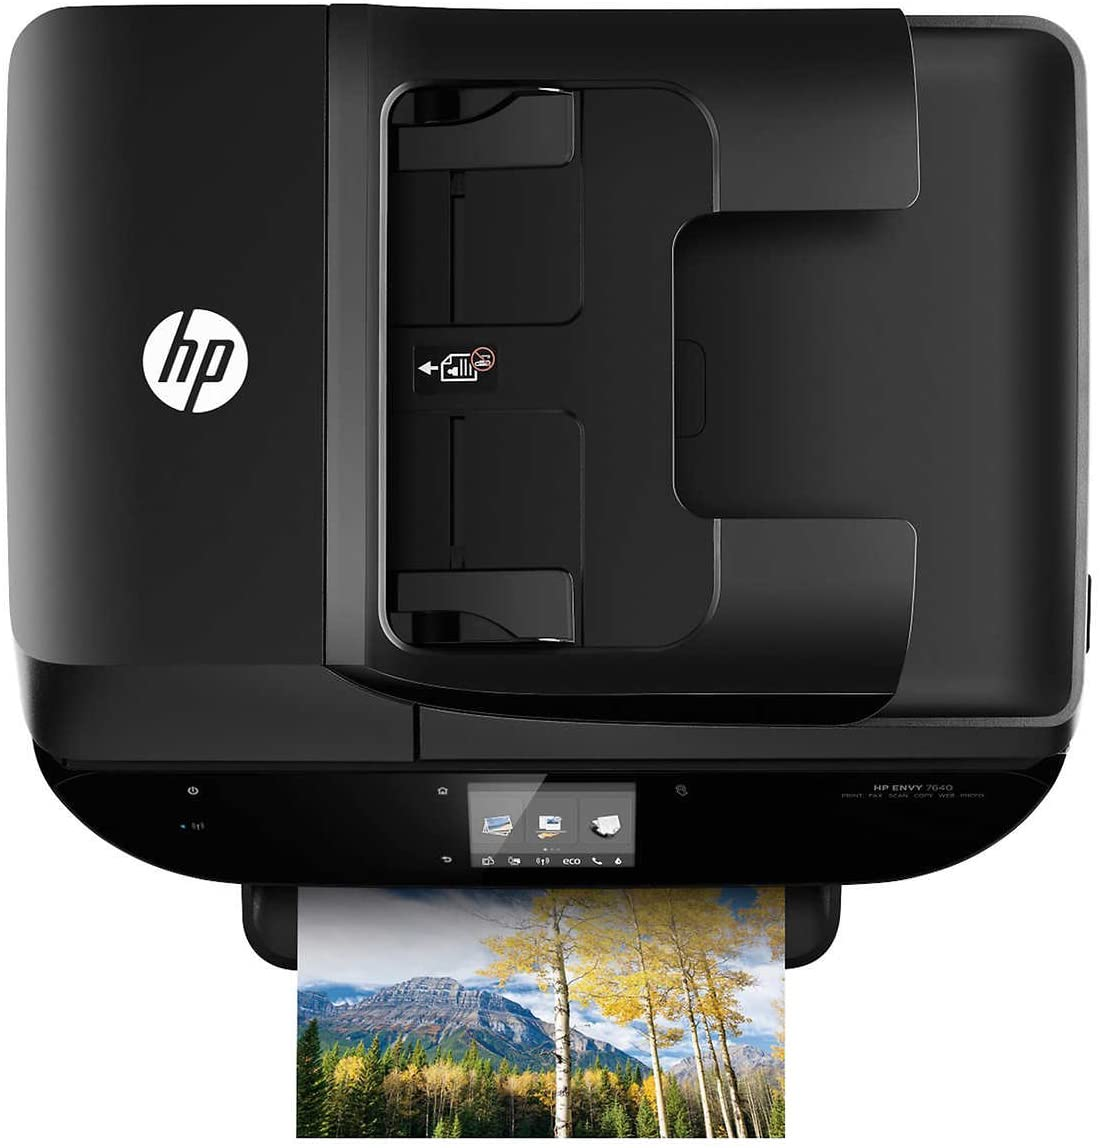 HP 7645 Review – HP ENVY 7645 Inkjet Printer Review 2021